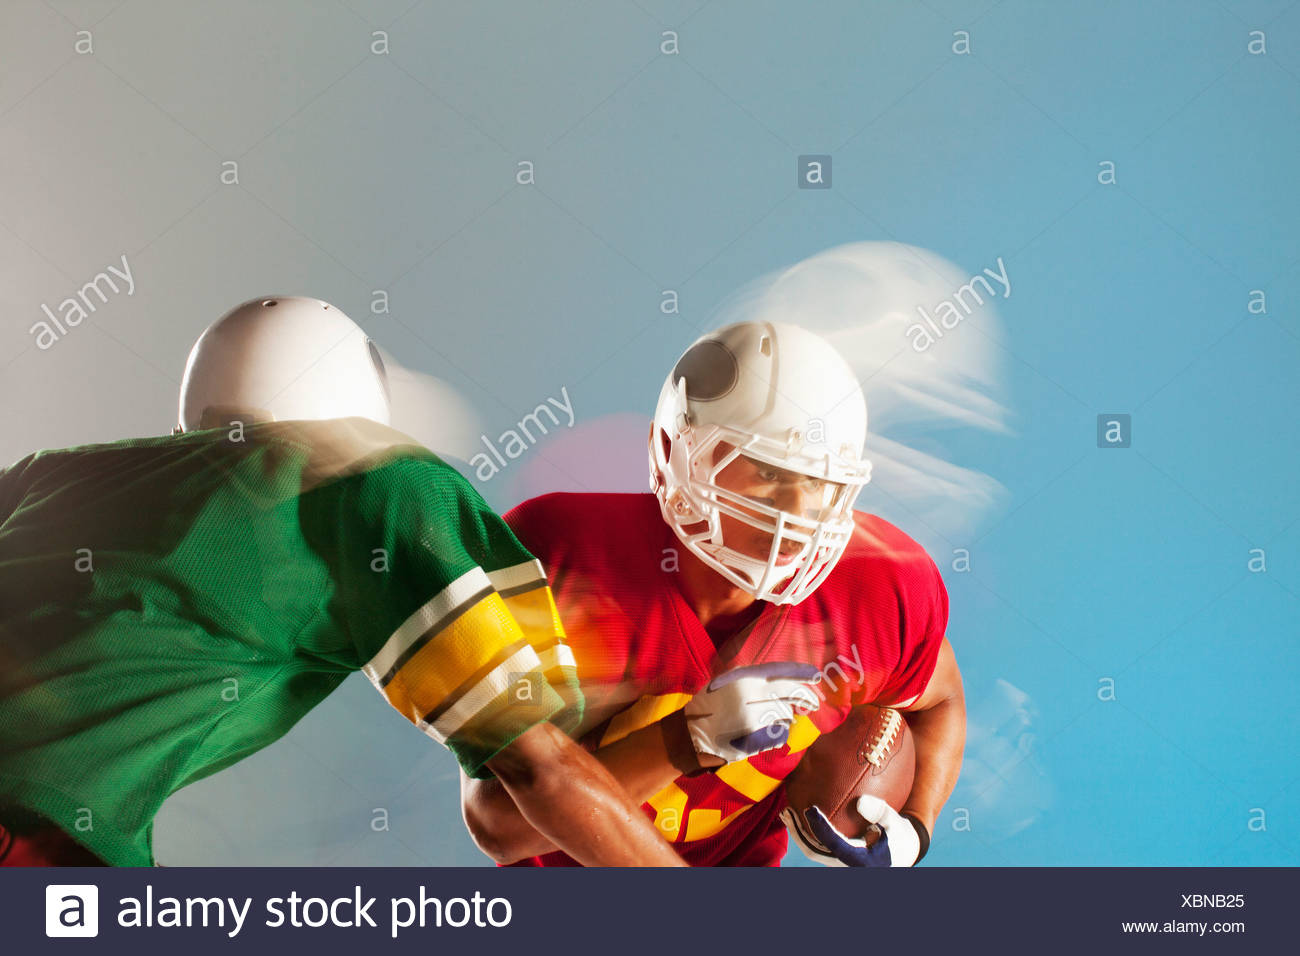 Blurred view of football players with ball - Stock Image